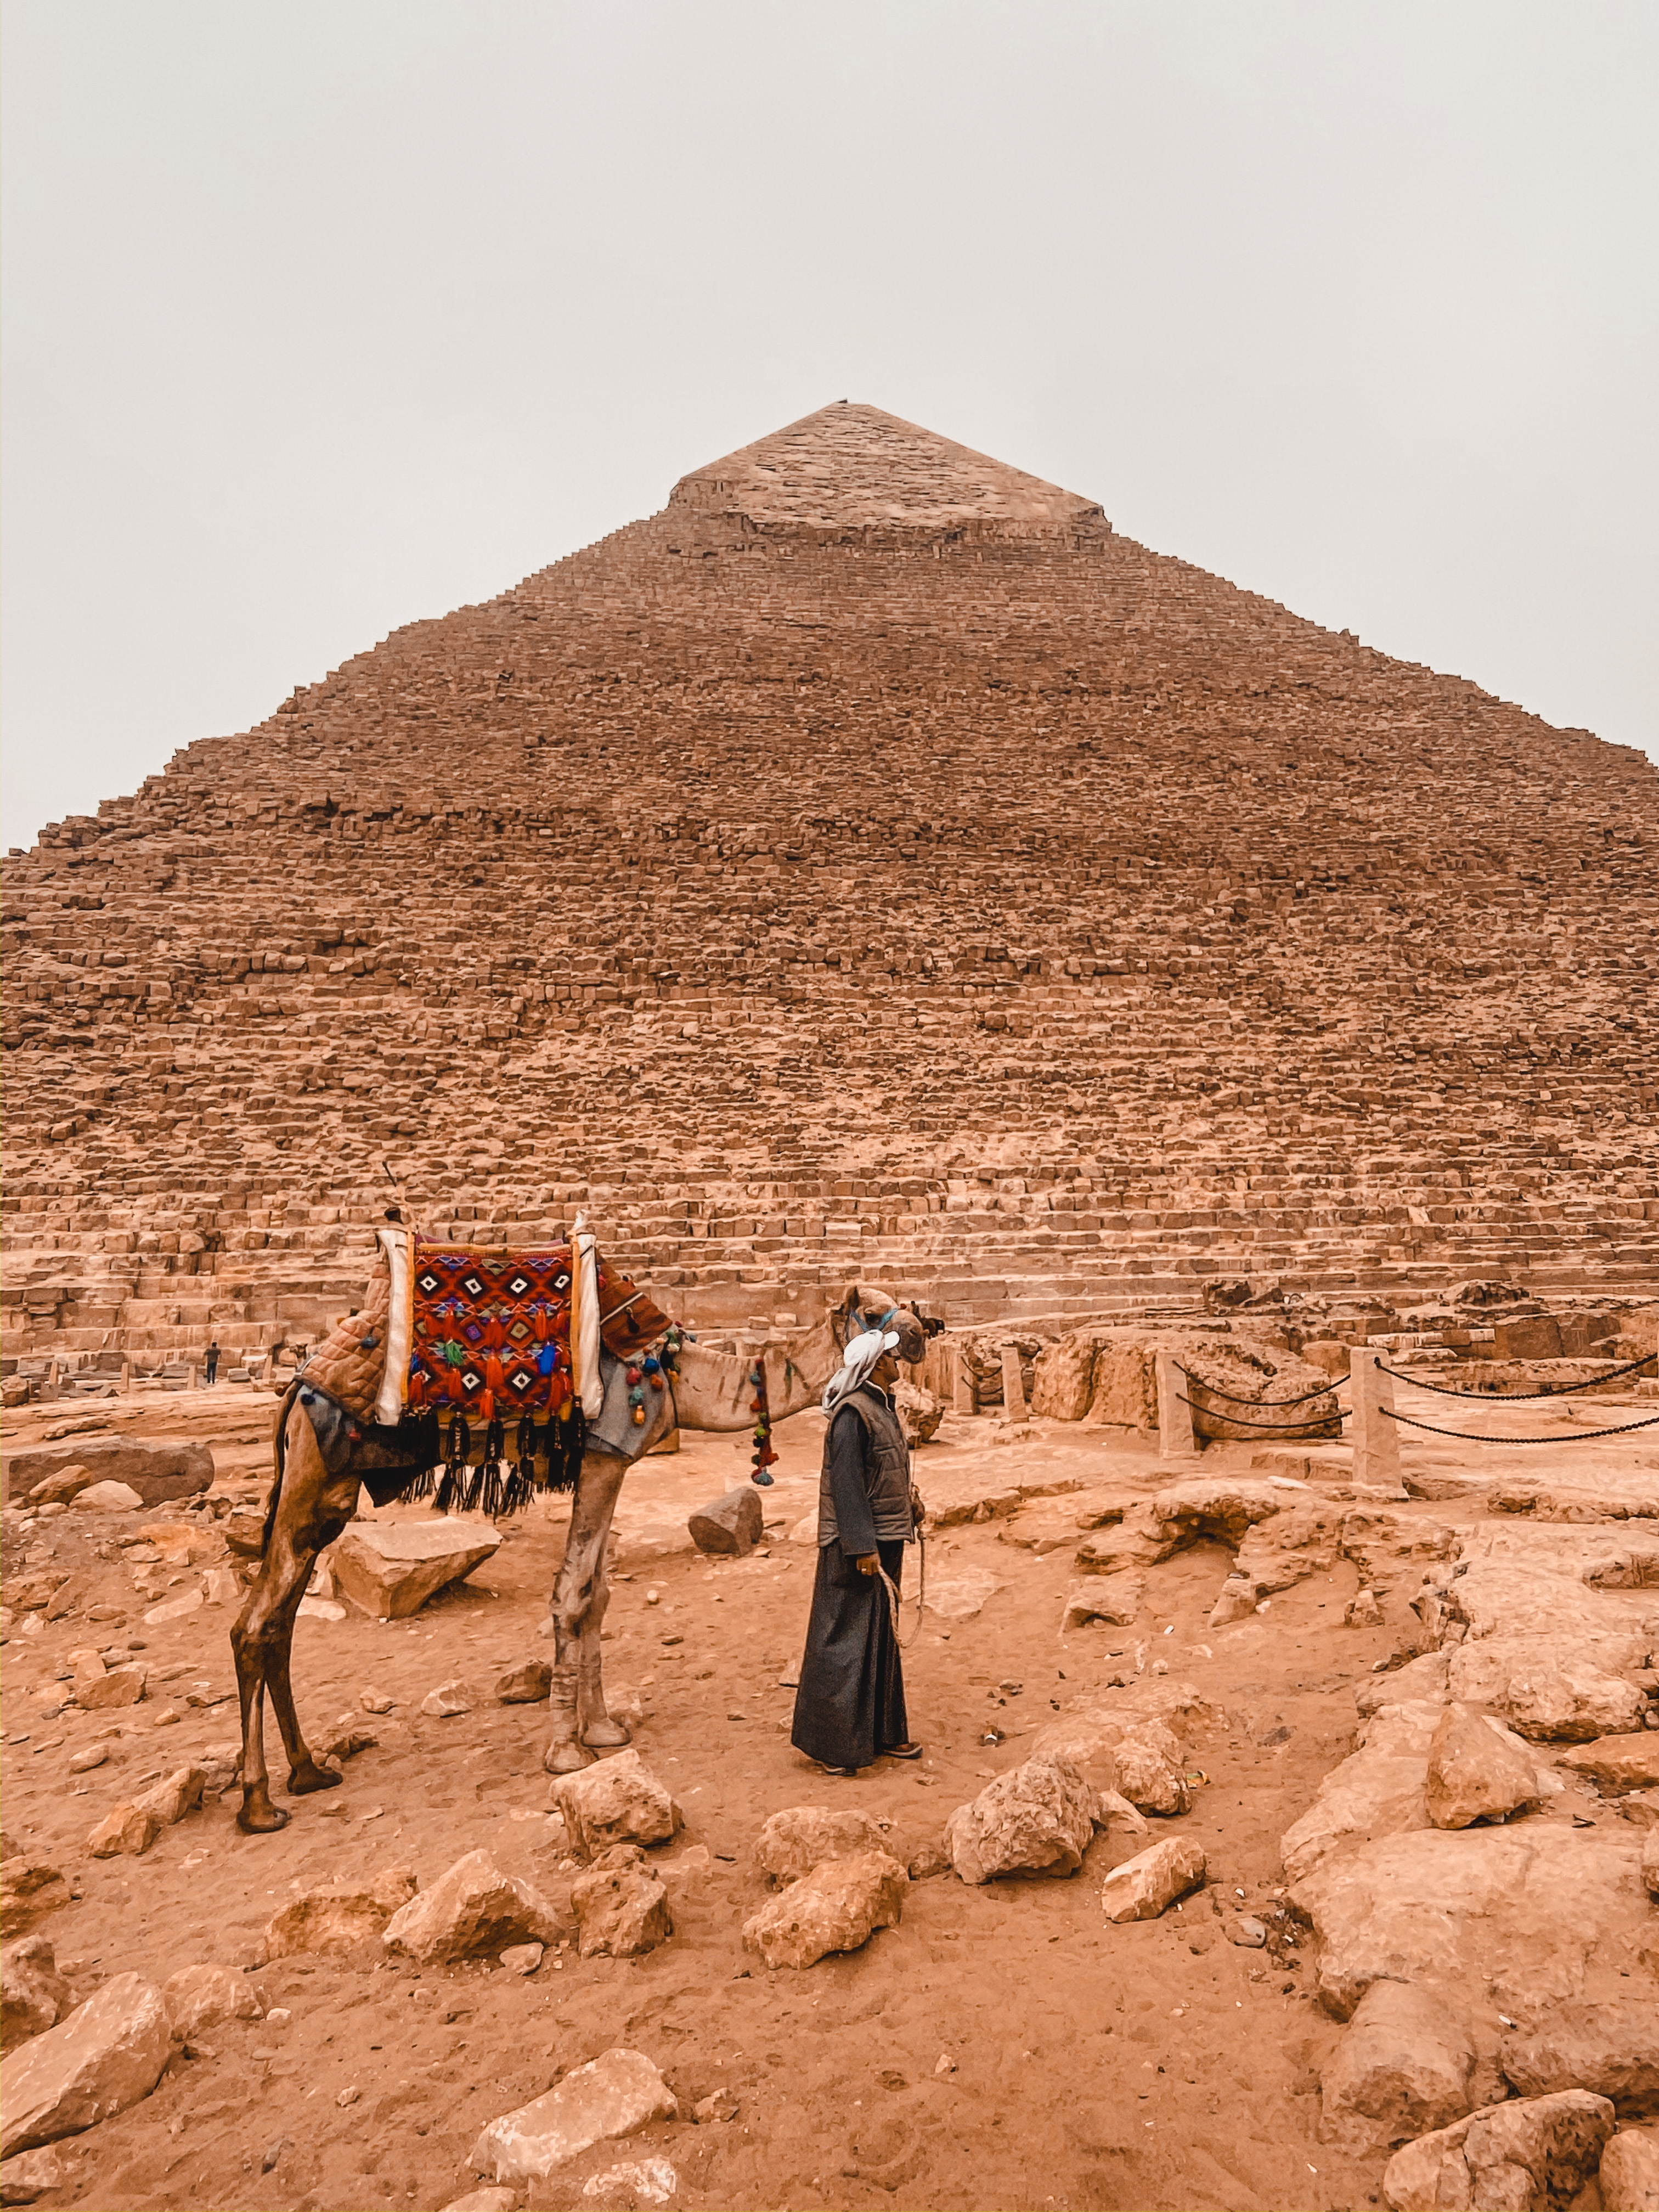 Man with camel in front of Great pyramids of Giza